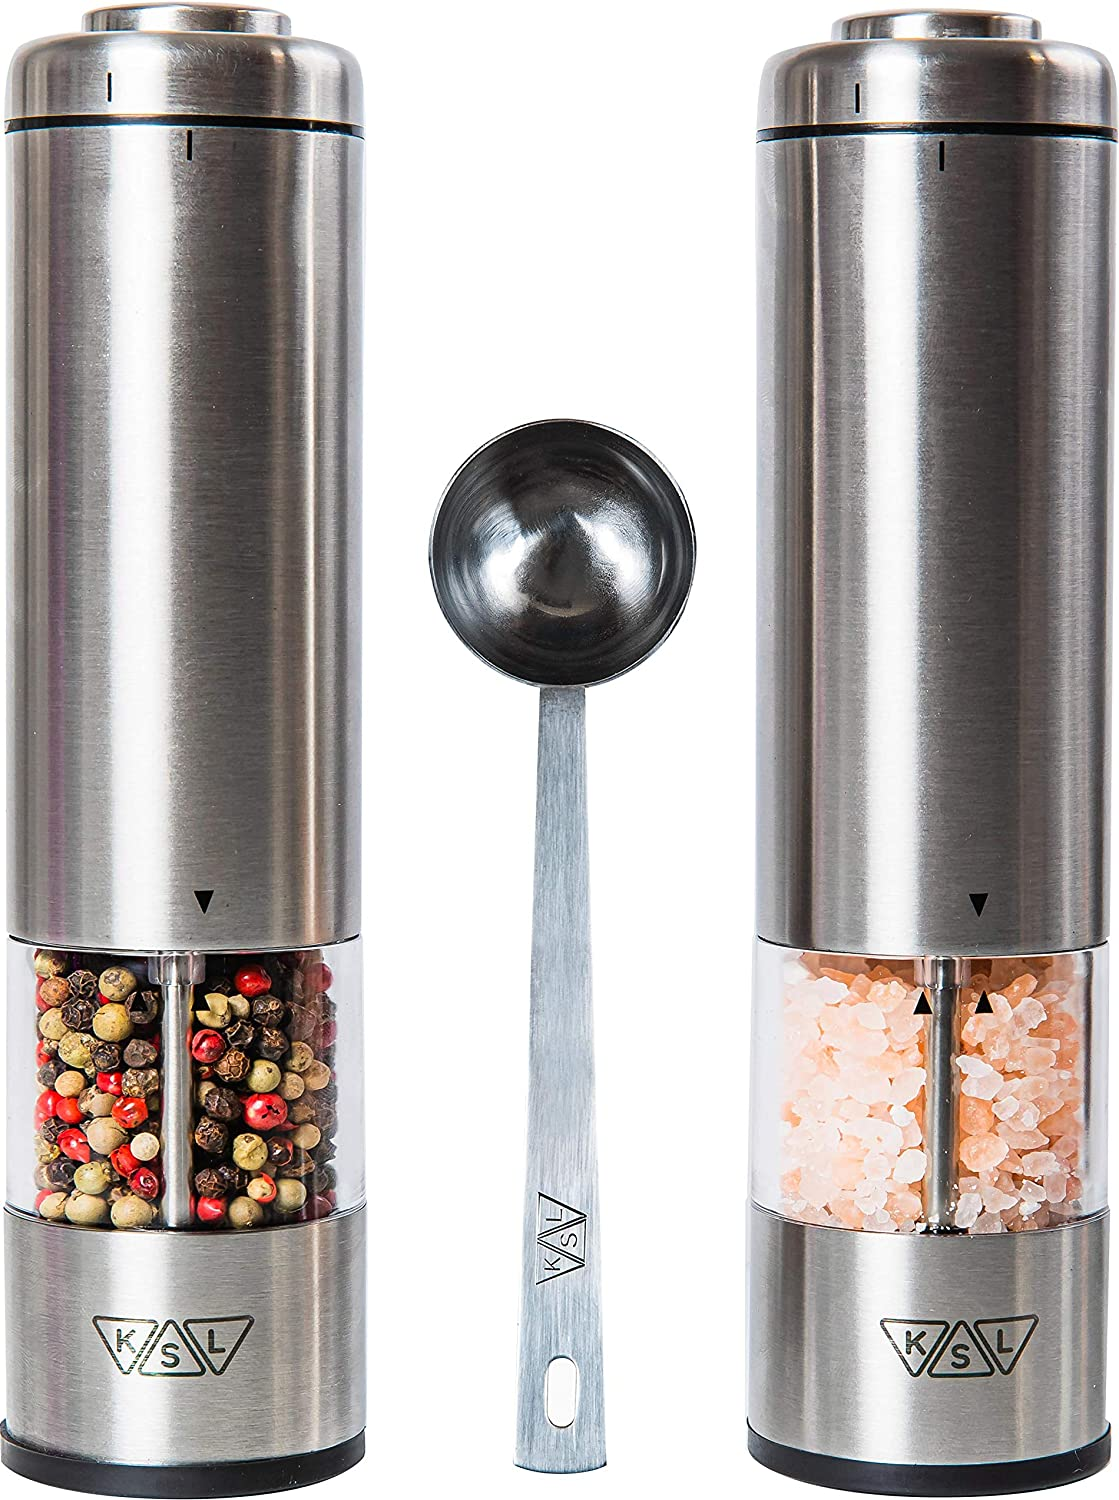 Ksl Electric Salt And Pepper Grinder Set Batteries Included Automatic Adjustable Shakers Stainless Steel Powered Spice Mills Battery Operated Kitchen Peppermills Light Housewarming Gift Idea Kitchen Dining